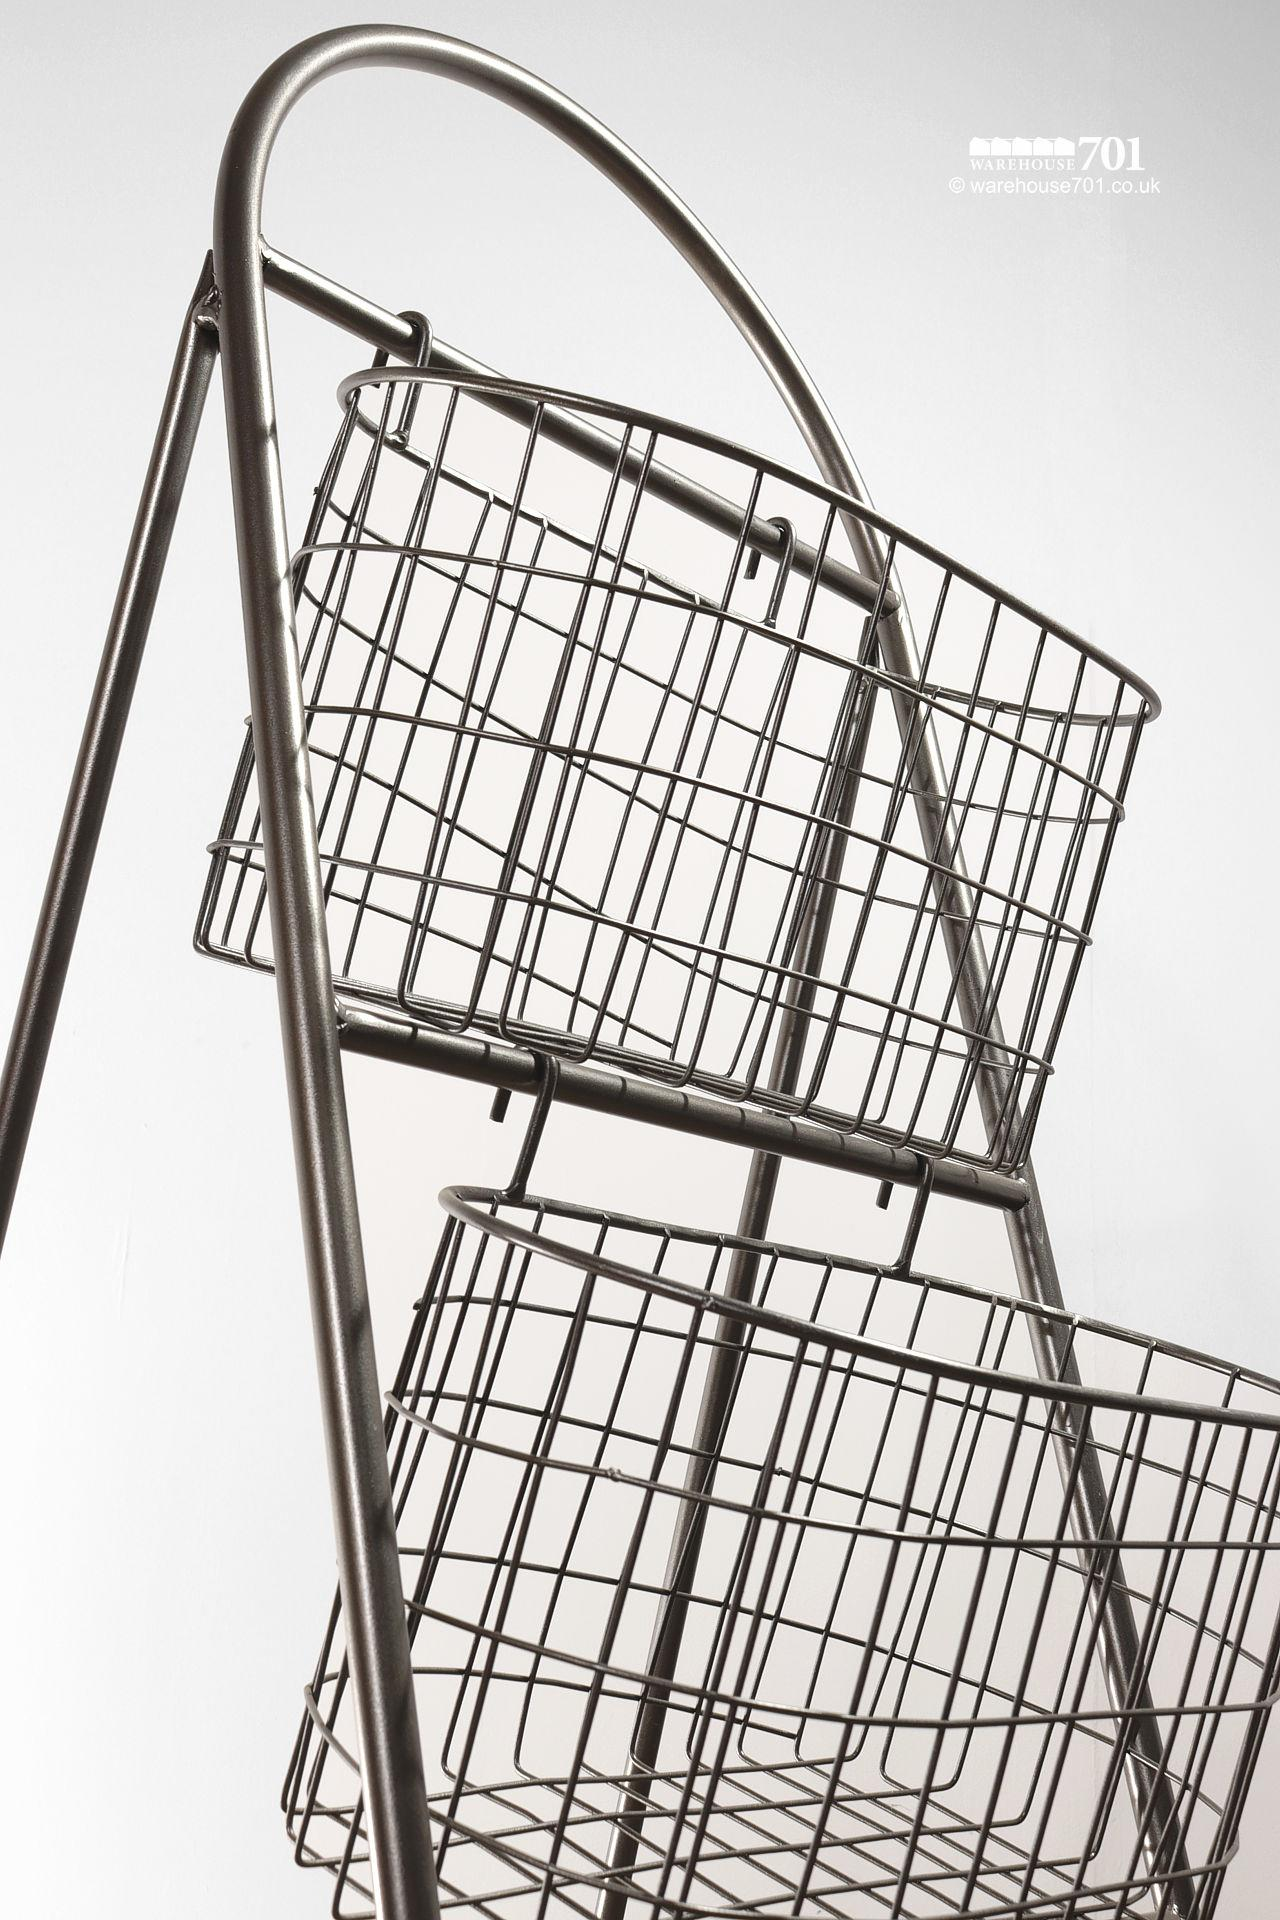 NEW Collapsible Wire Mesh Triple Basket Storage Rack or Stand #4